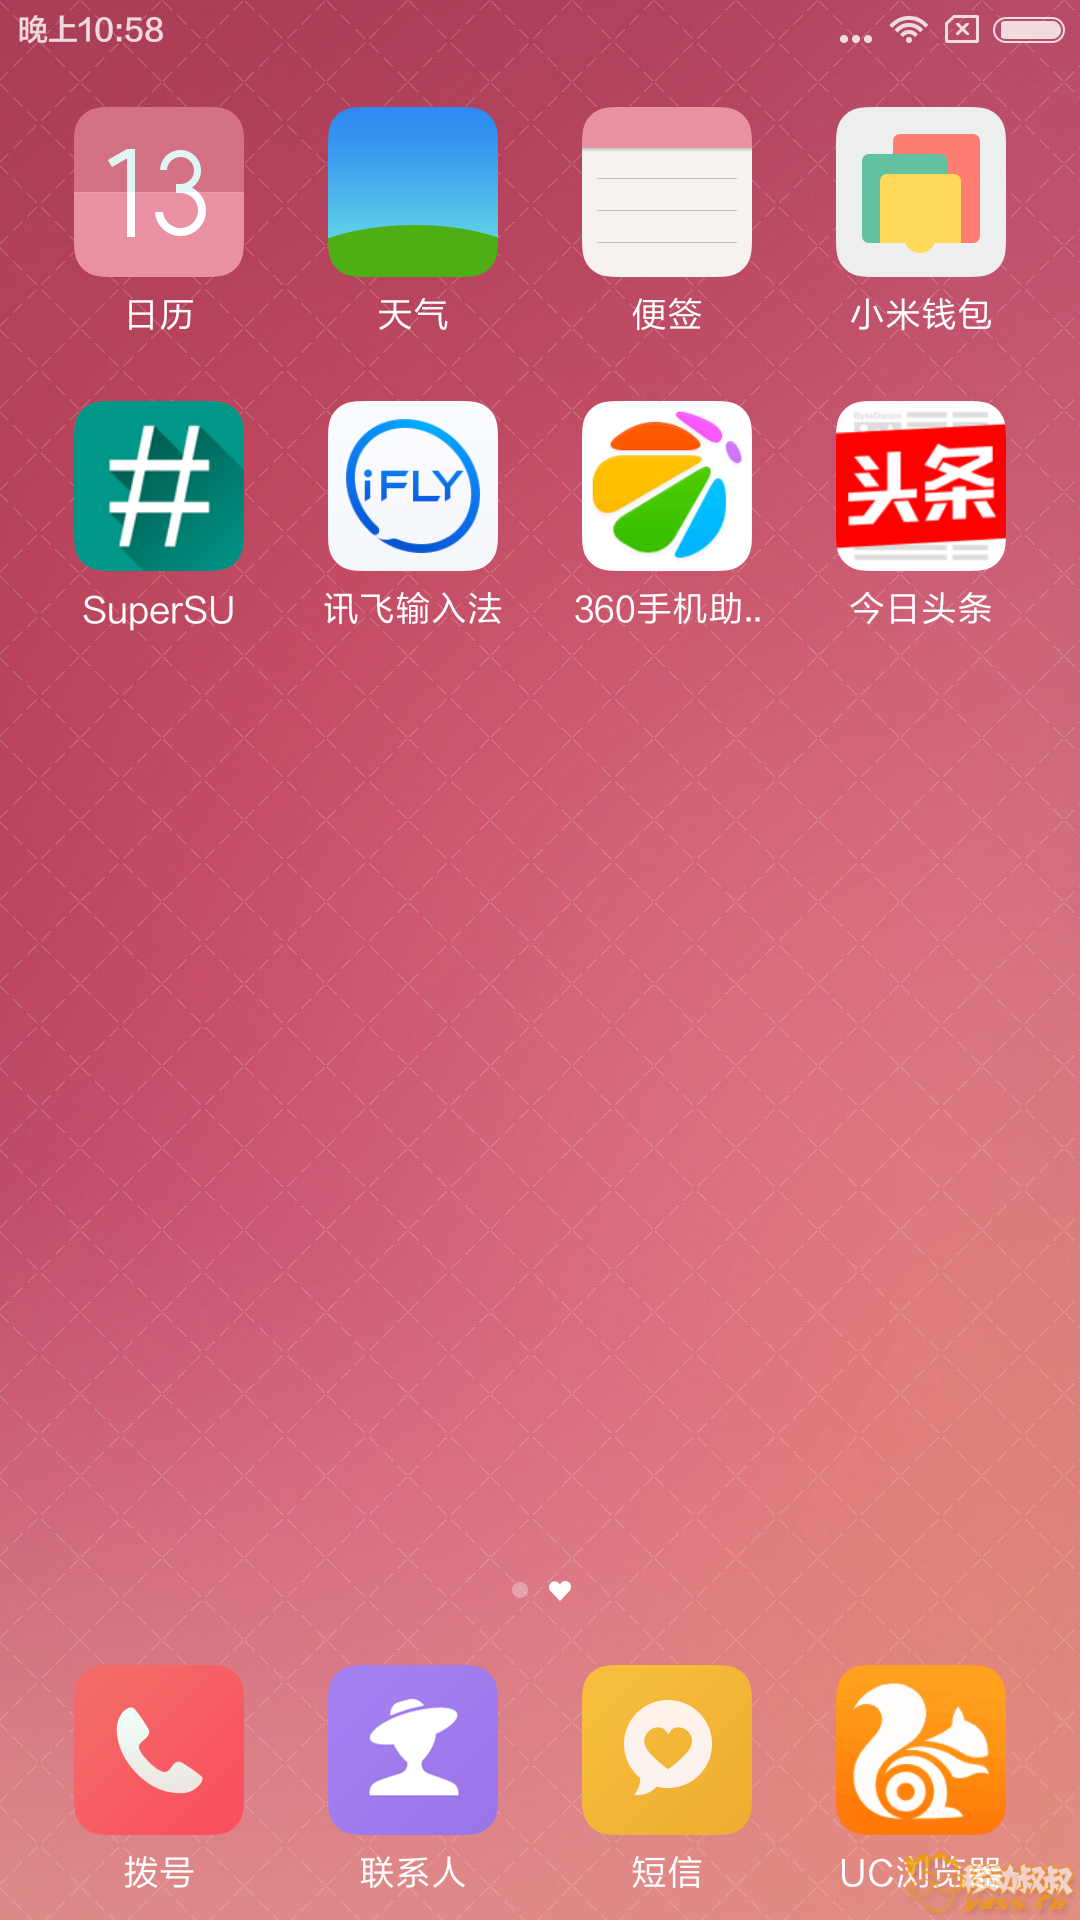 Screenshot_2016-05-13-22-58-49_com.miui.home.png